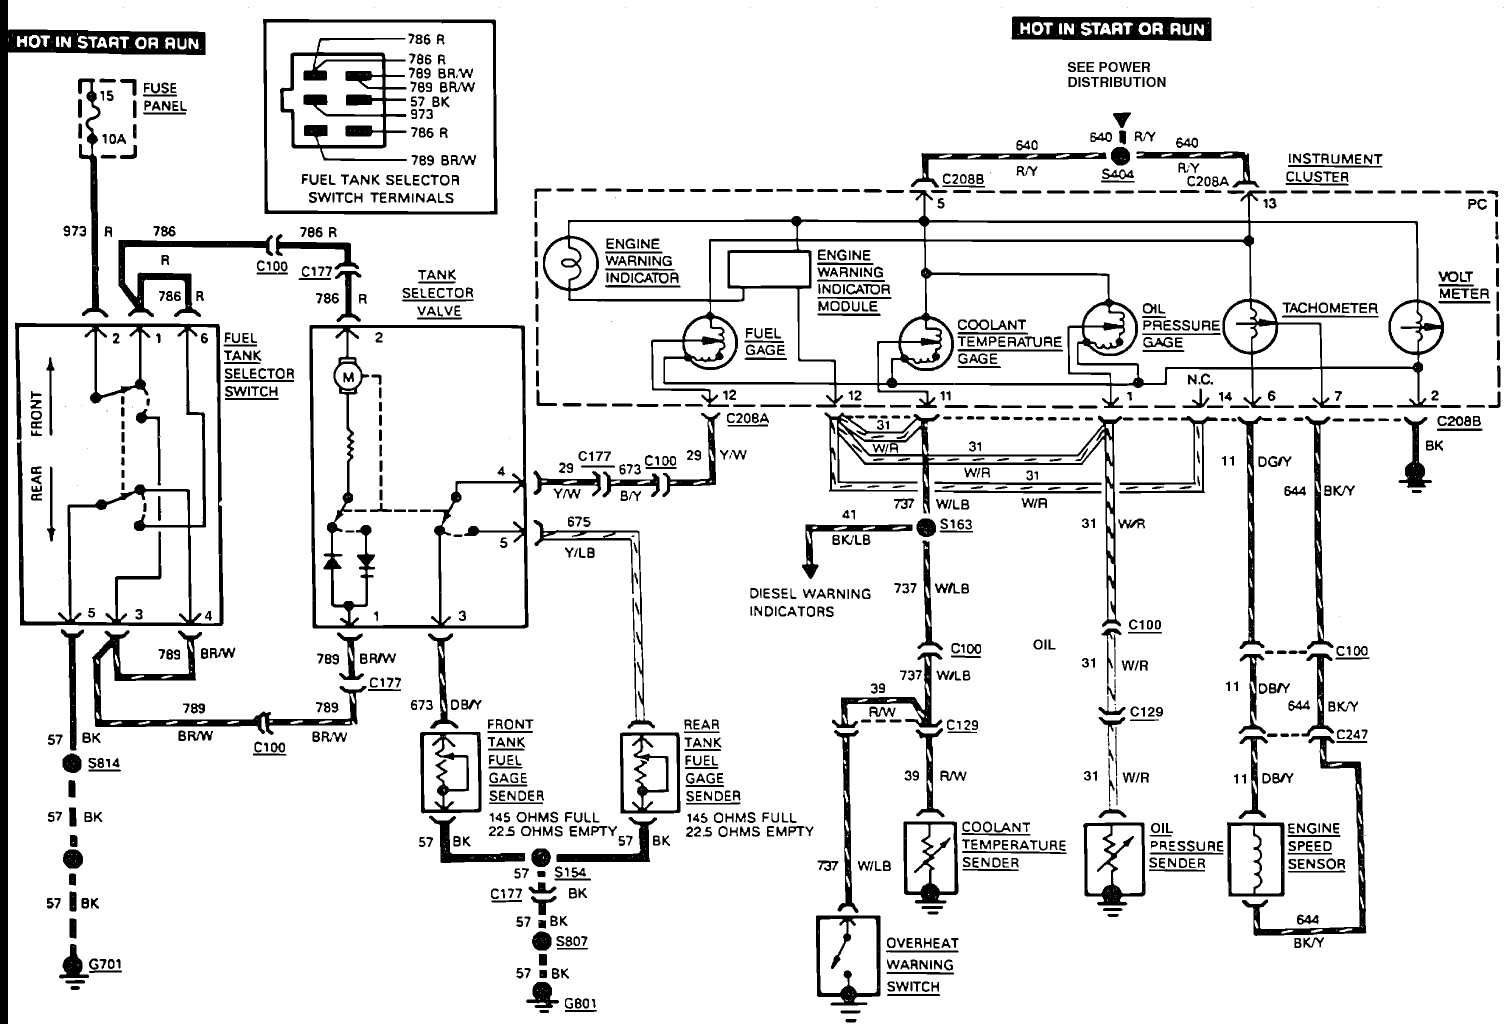 ford e350 wiring diagram | free wiring diagram 2008 kia sedona wiring diagram free download